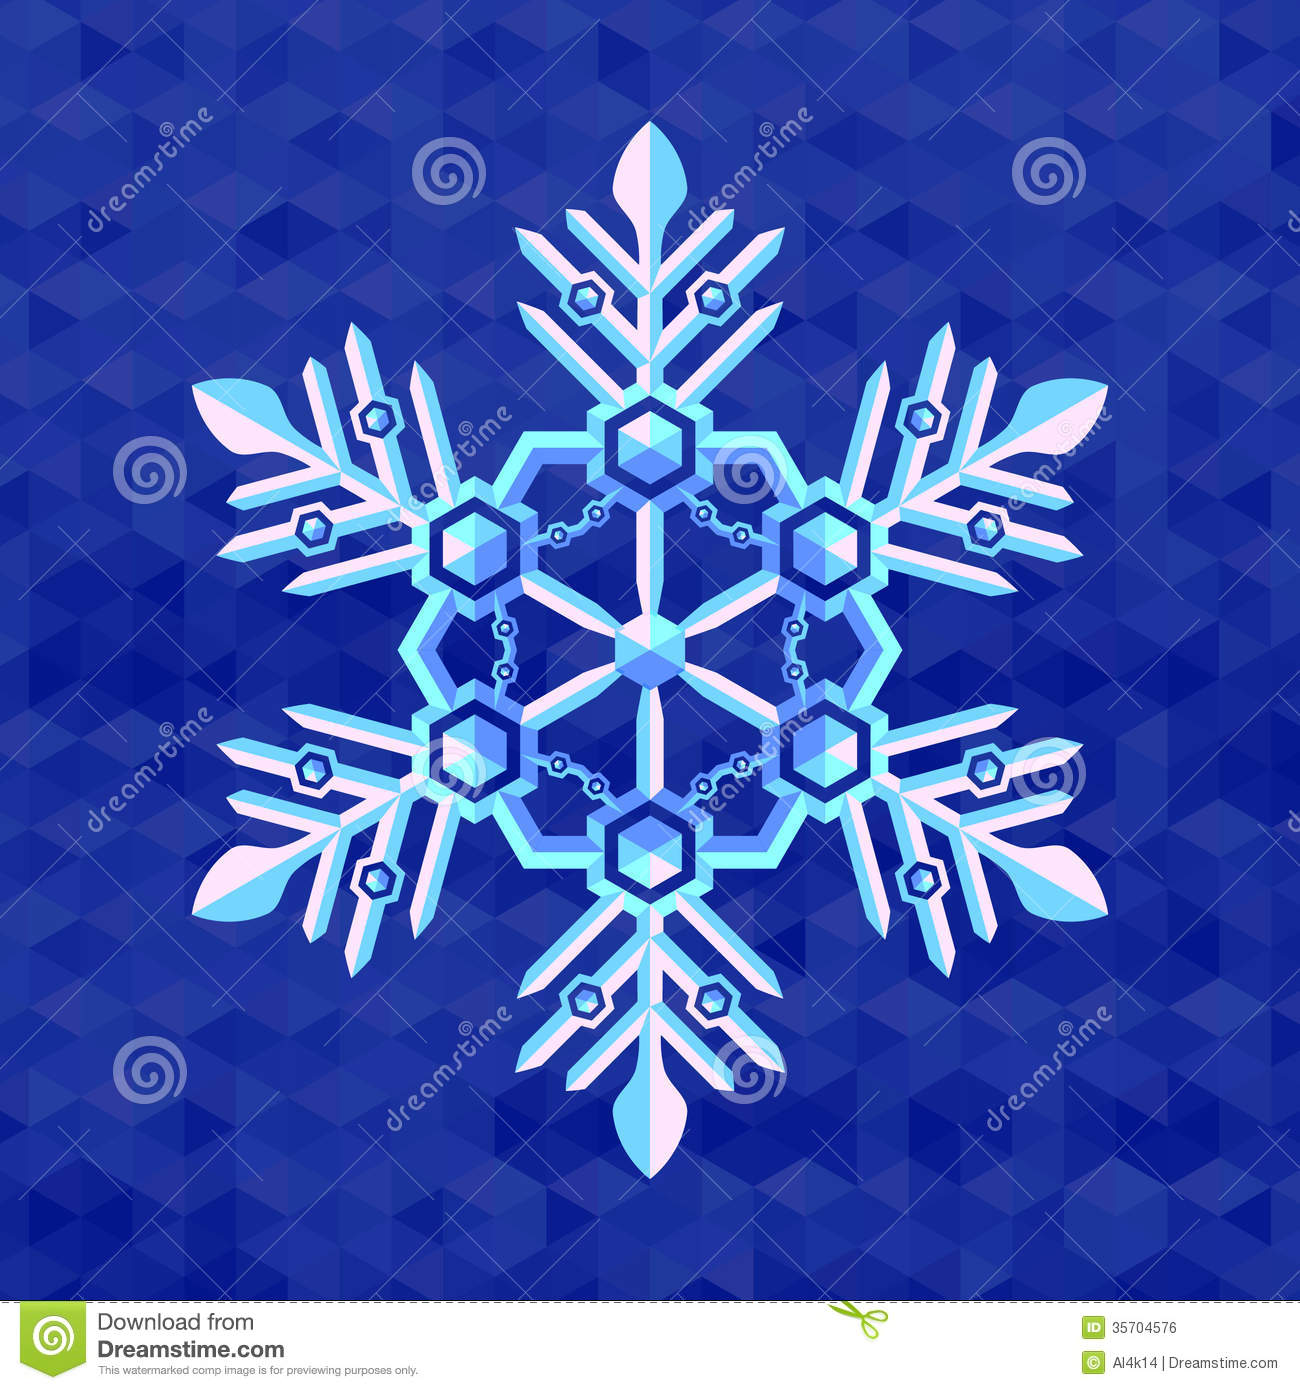 Template Greeting Card Royalty Free Stock Image: Christmas Snowflake Greeting Card Template Royalty Free